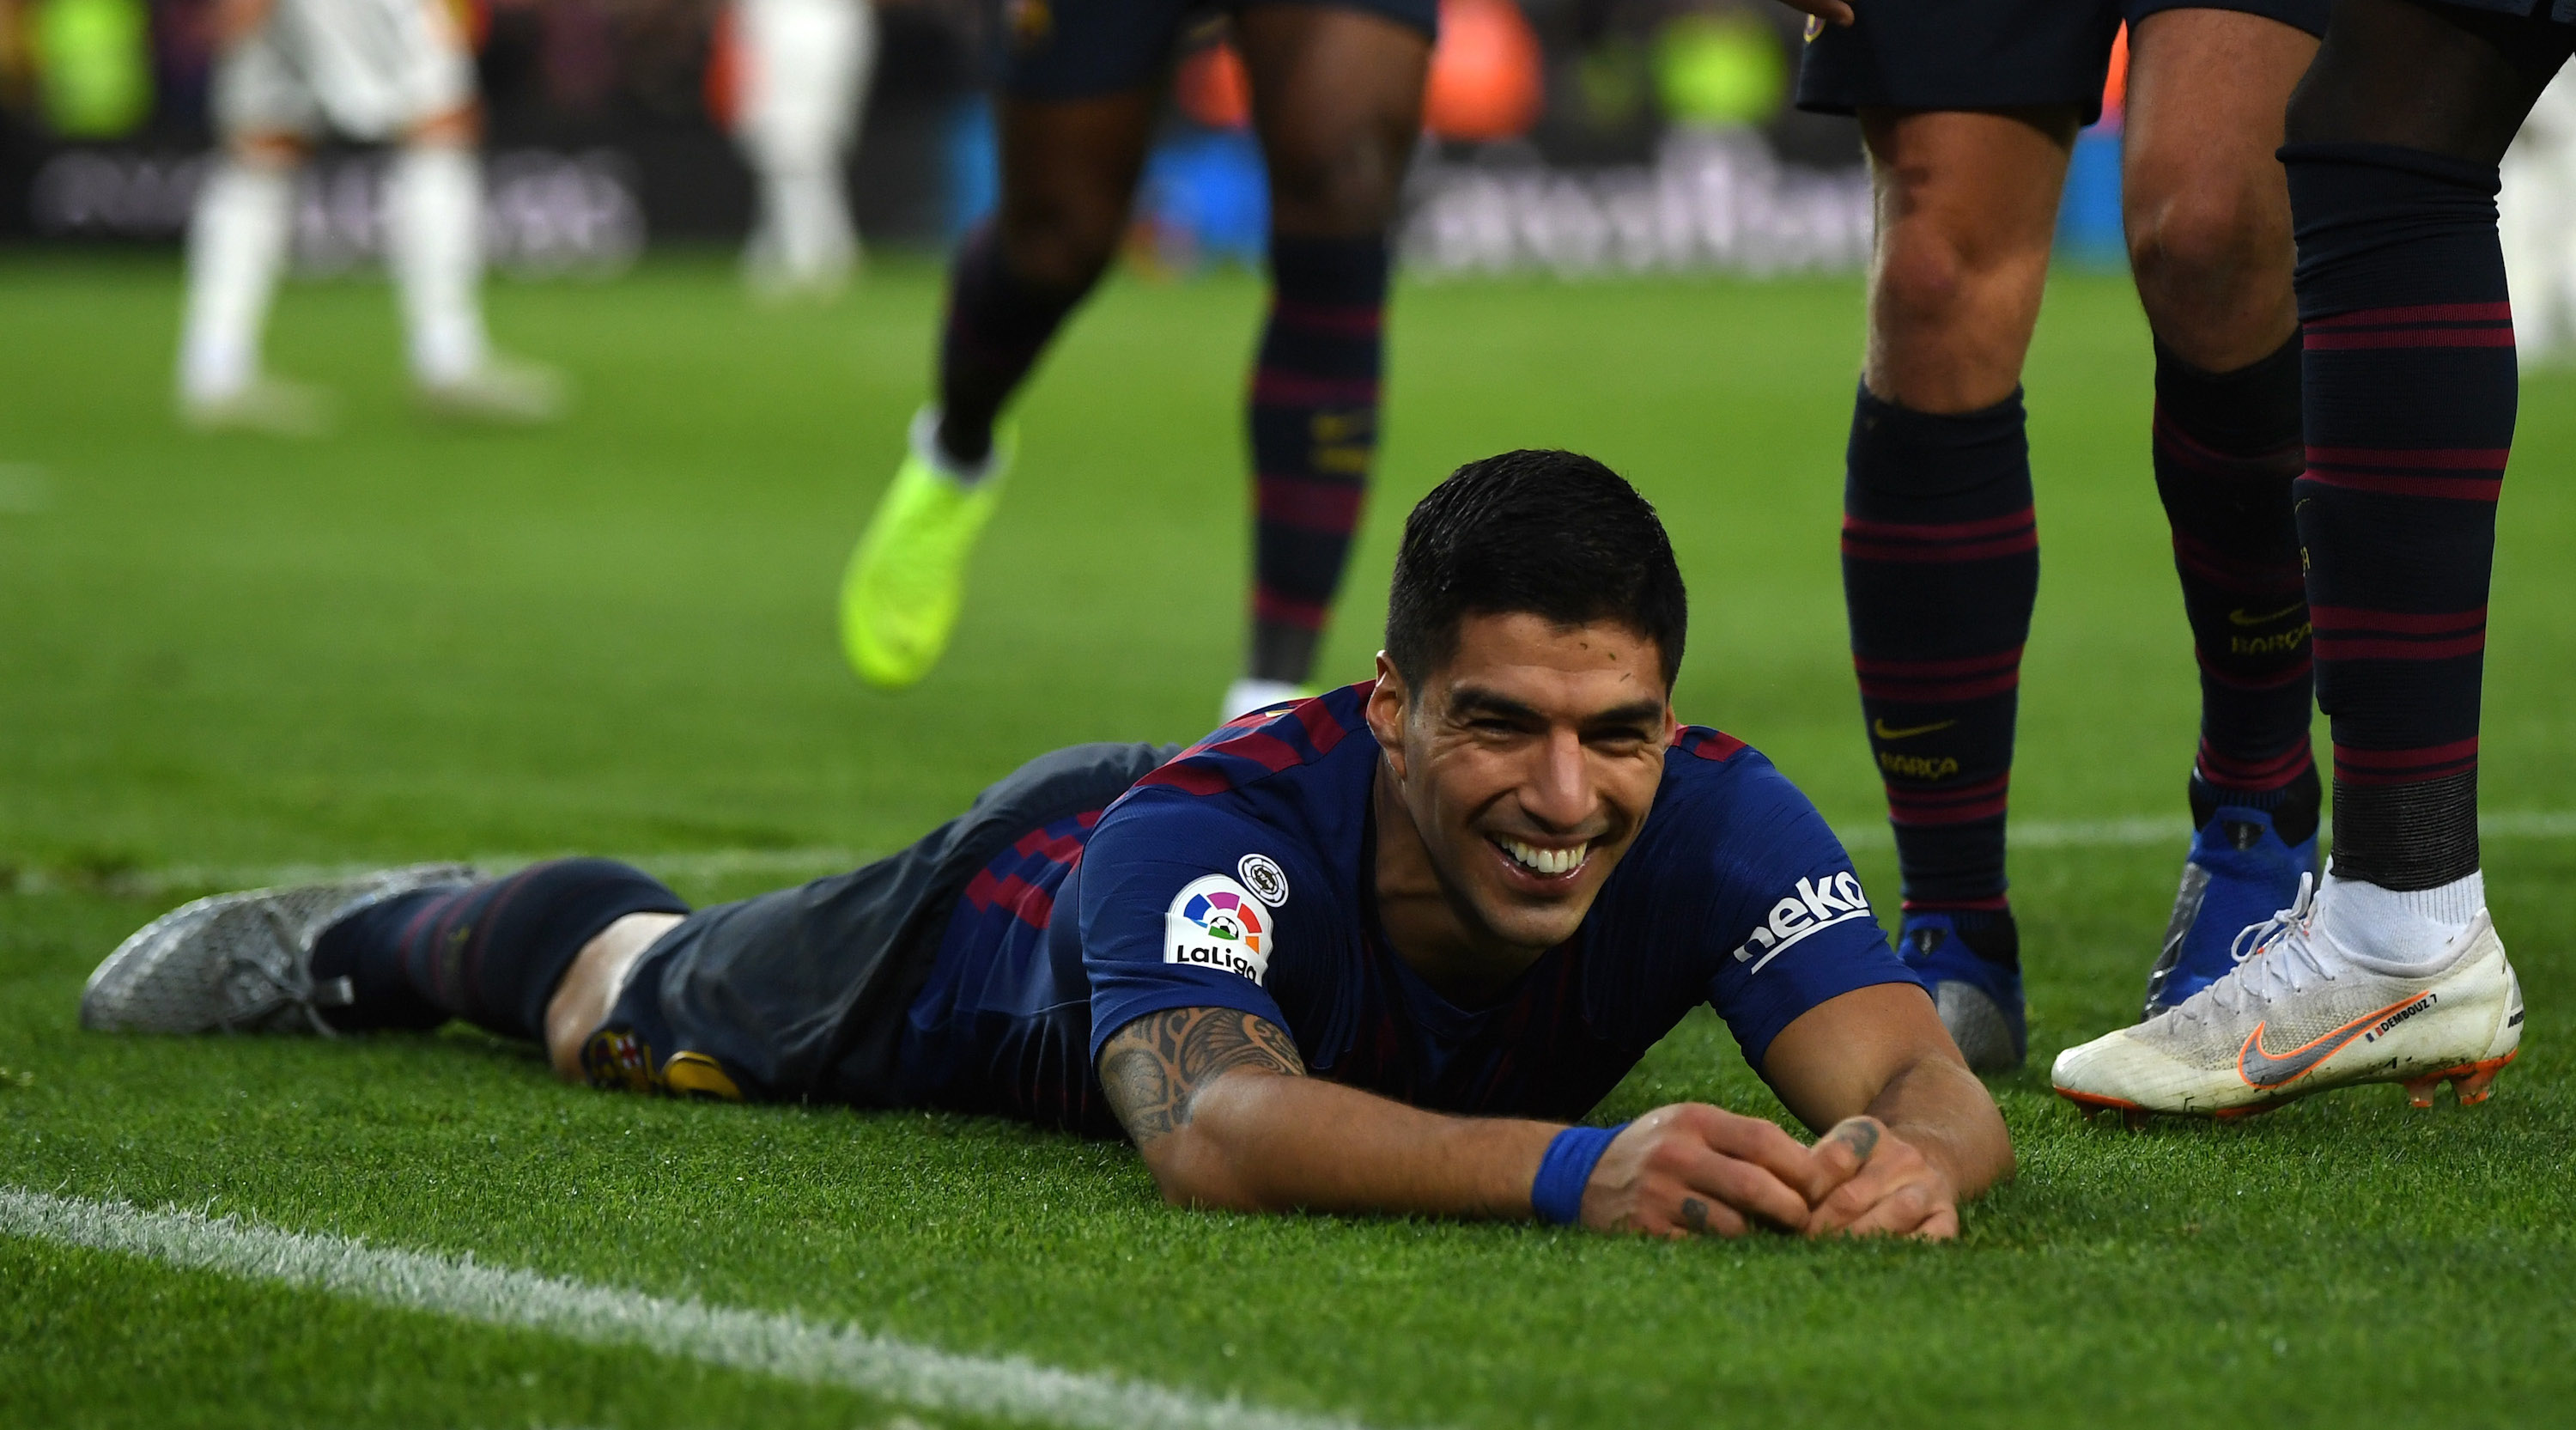 Luis Suarez of Barcelona celebrates scoring his sides third goal during the La Liga match between FC Barcelona and Real Madrid CF at Camp Nou on October 28, 2018 in Barcelona, Spain. (Photo by David Ramos/Getty Images)